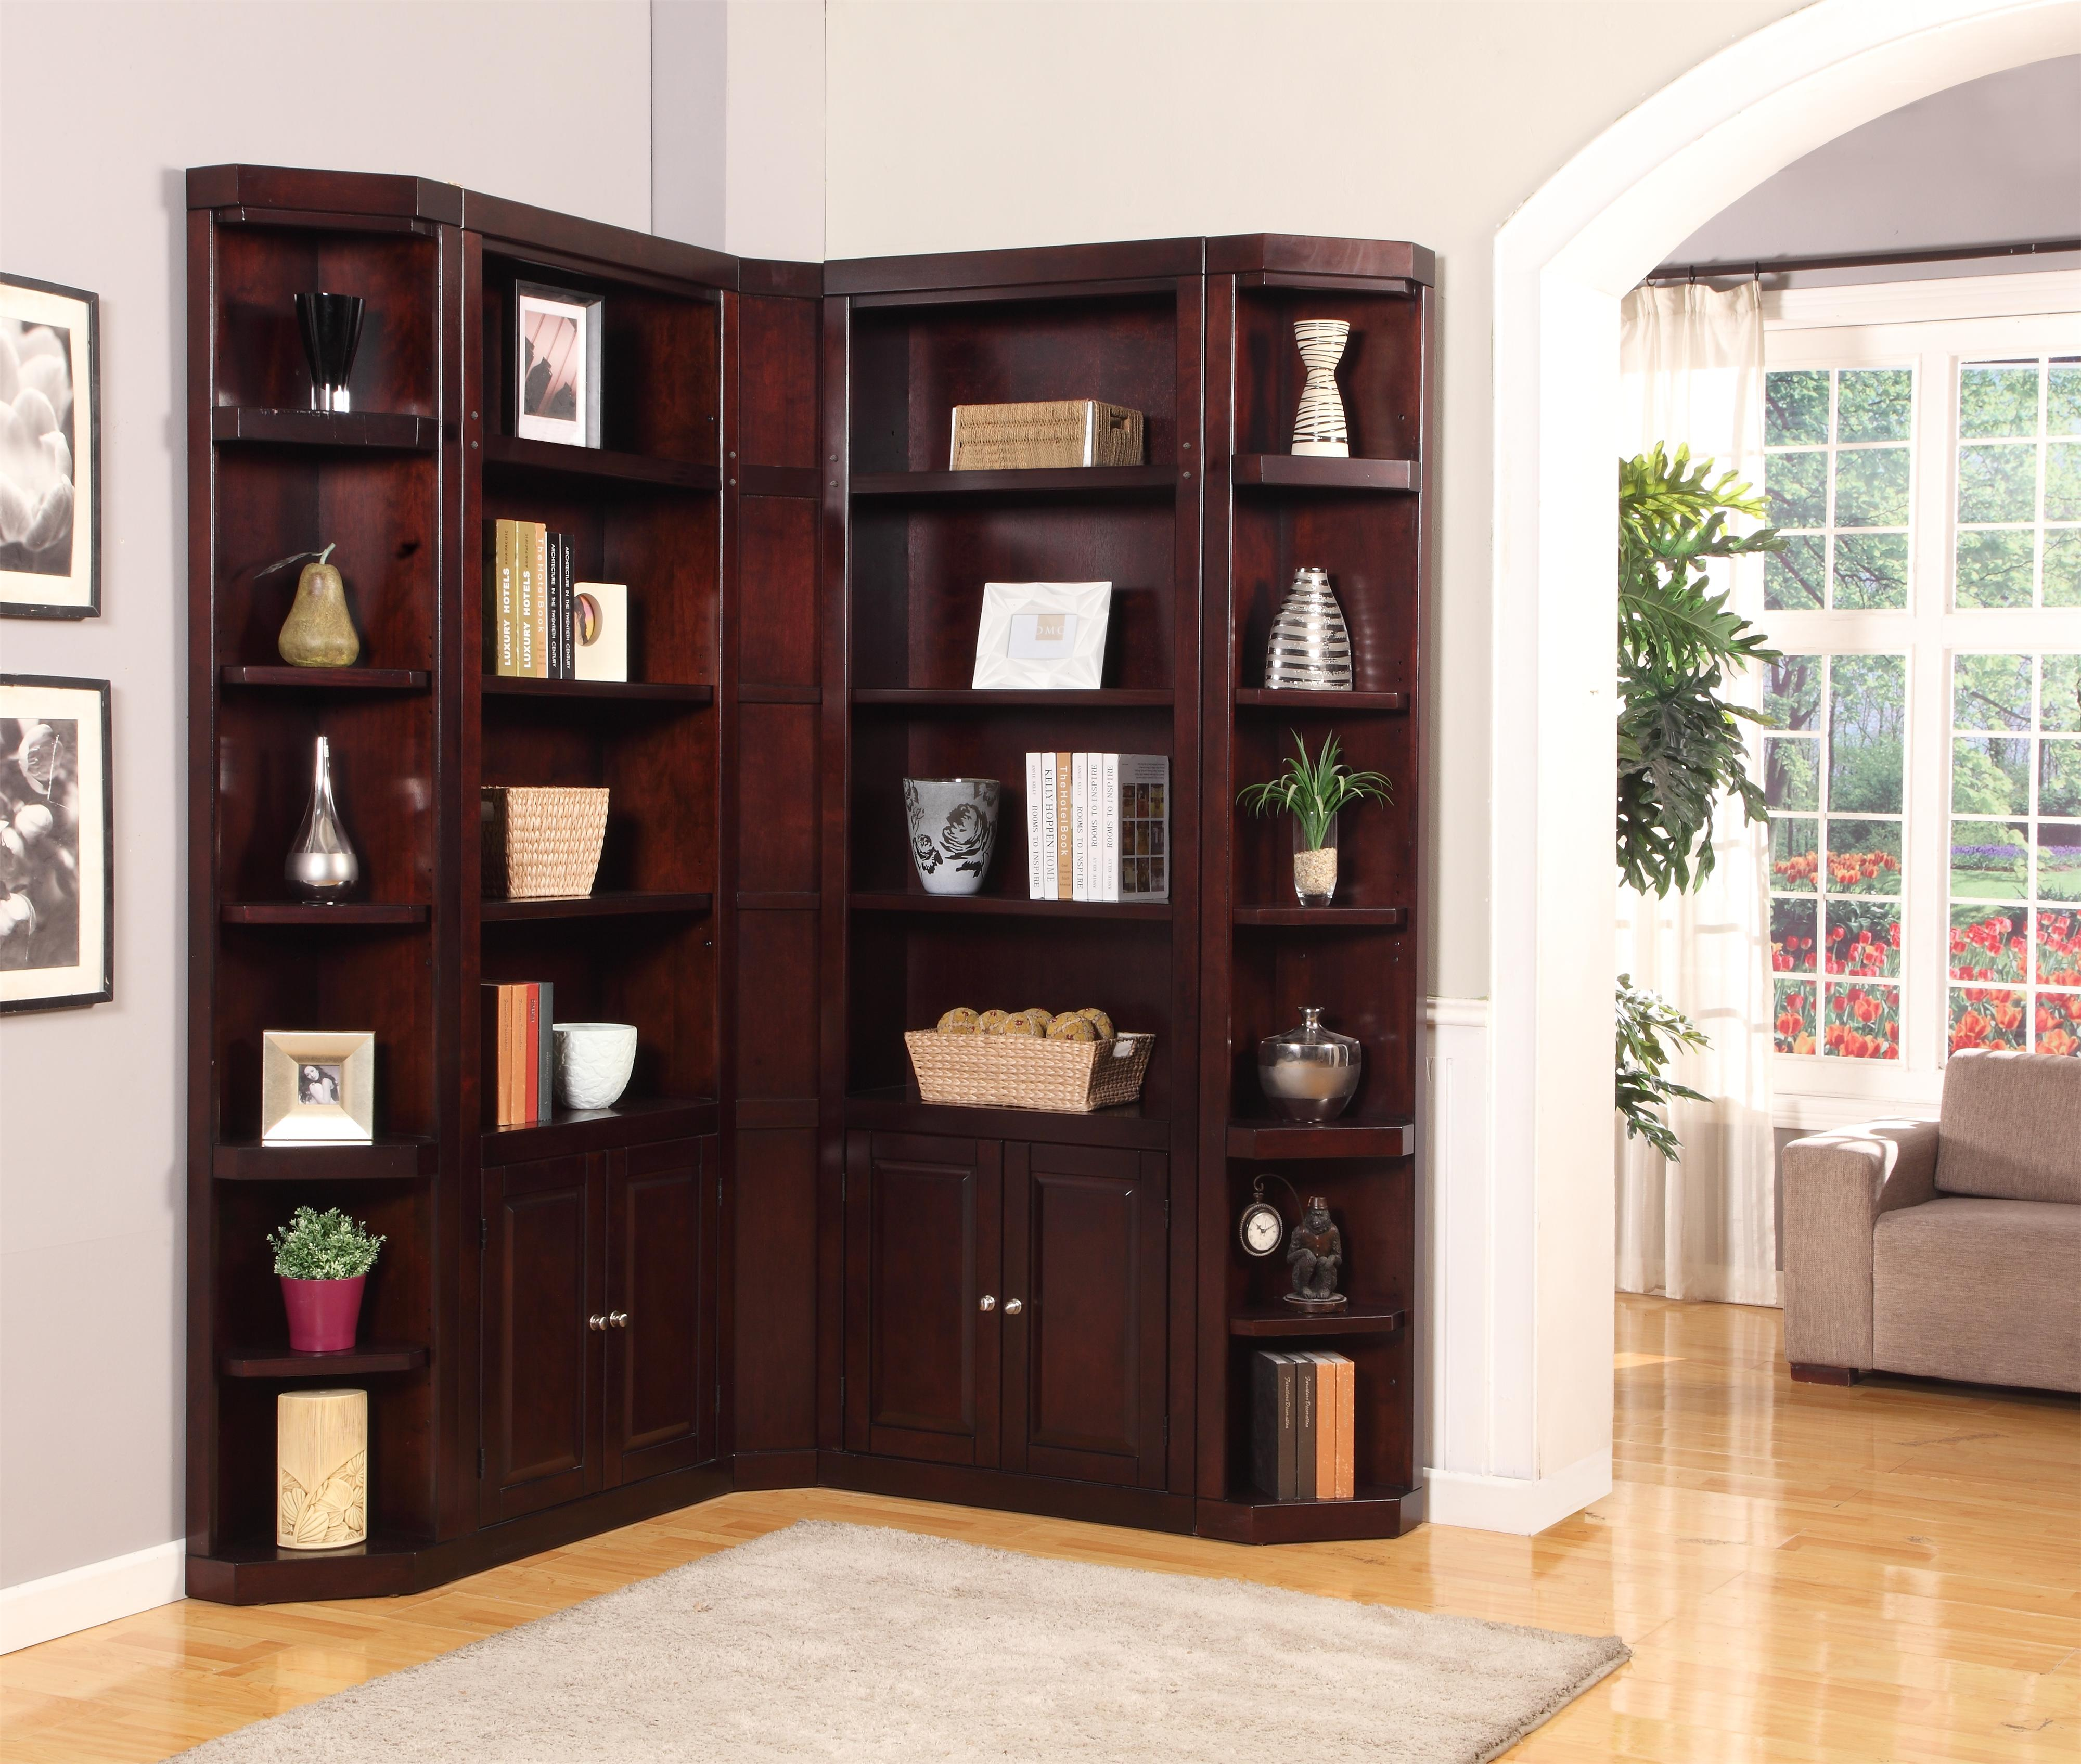 Livingroom Yaheetech Tier Espresso Finish Wood Wall Corner Shelf Living Room  Glass Shelves Ideas For Stand Shelving Units Dark Brown Wooden With Some  Racks